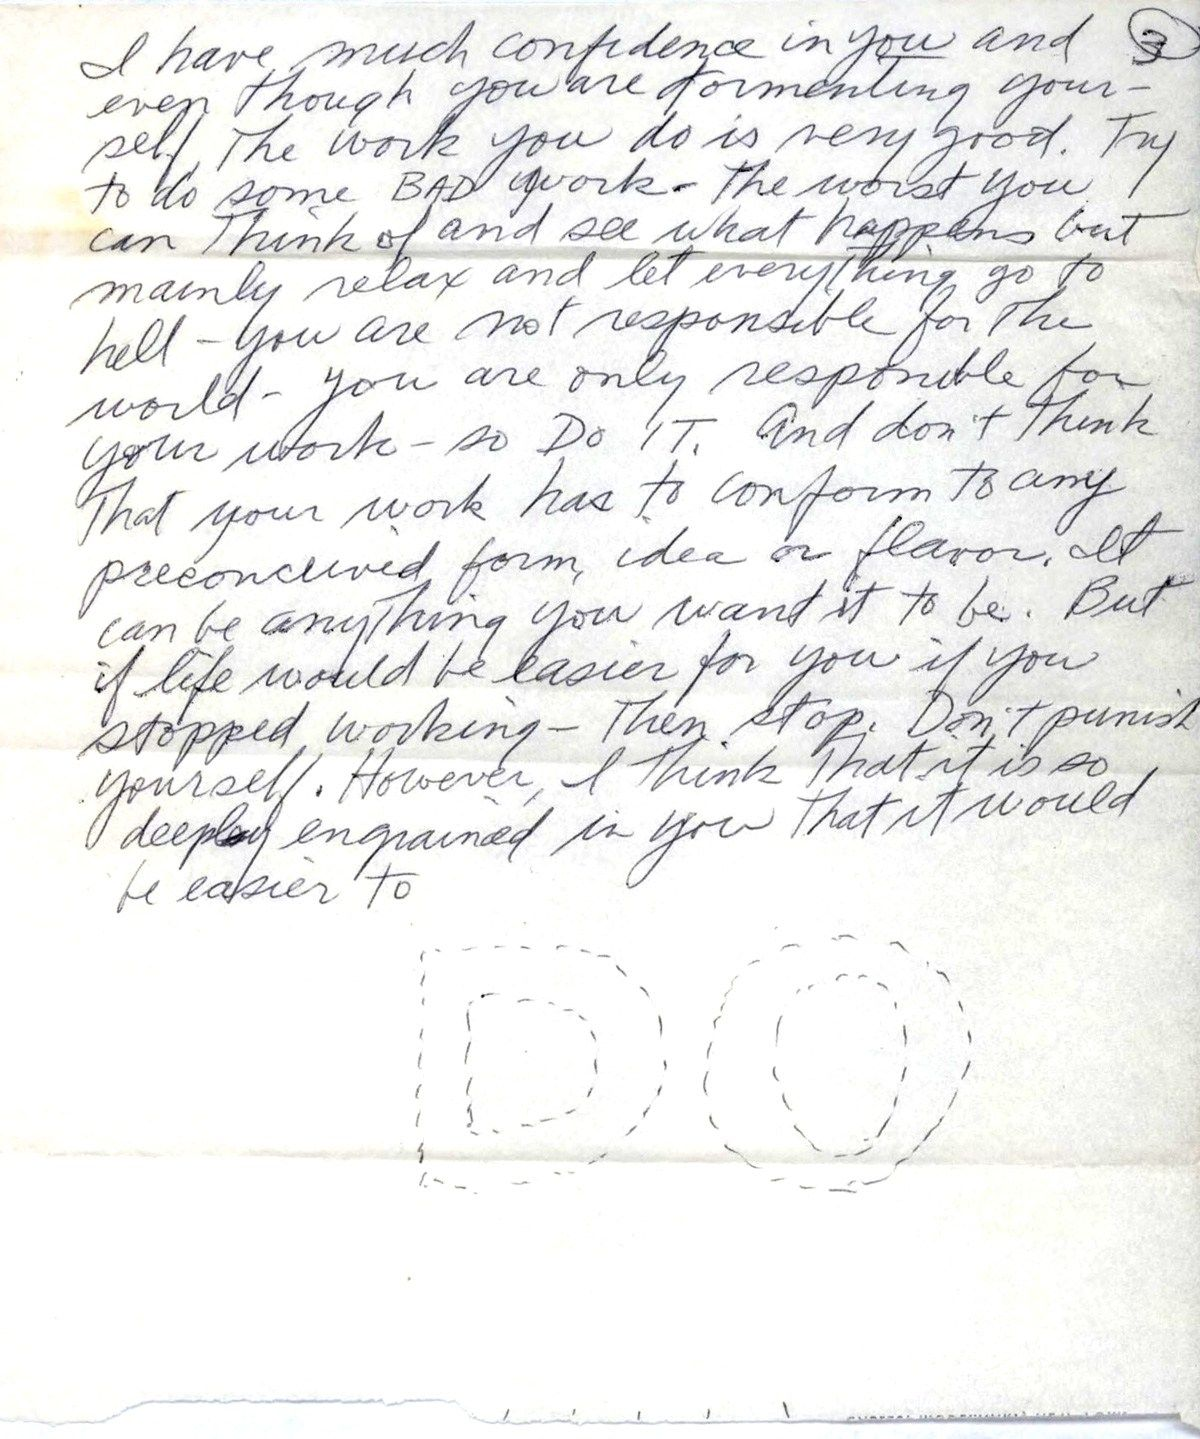 Do: Sol LeWitt's Electrifying Letter of Advice on Self